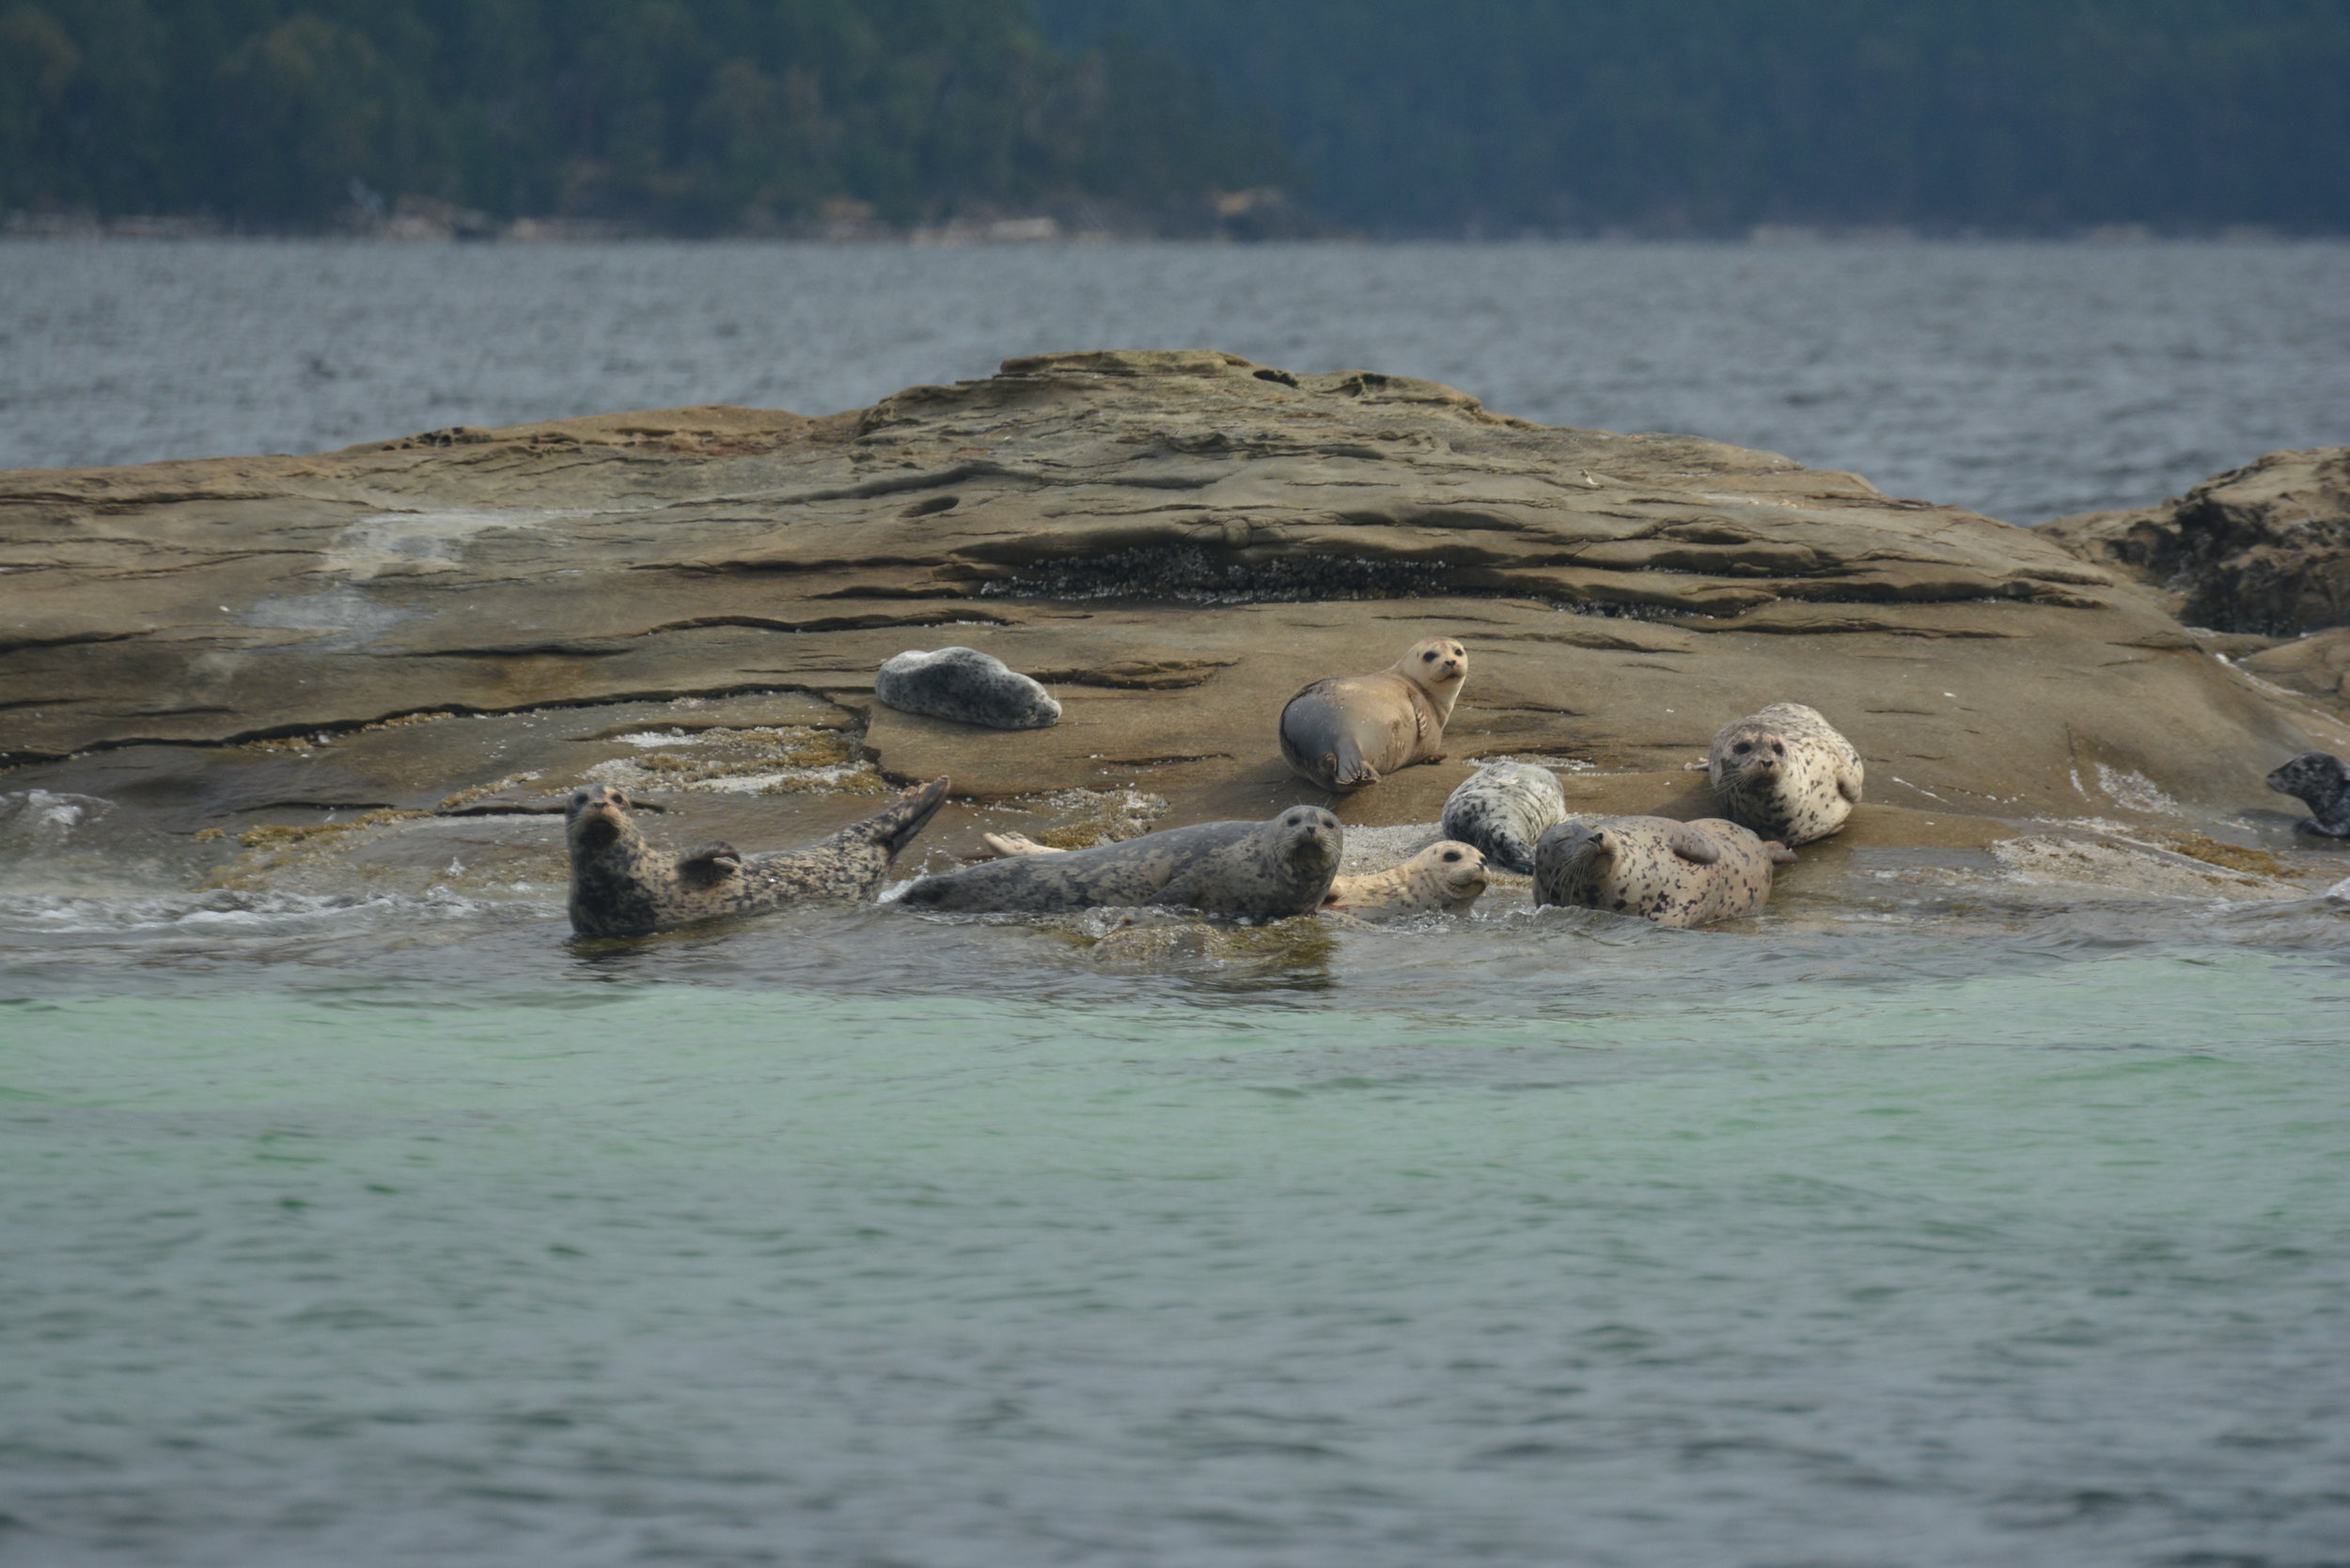 Harbour seals hauled out on the rocks. Look at how cute they are! Photo by Alanna Vivani